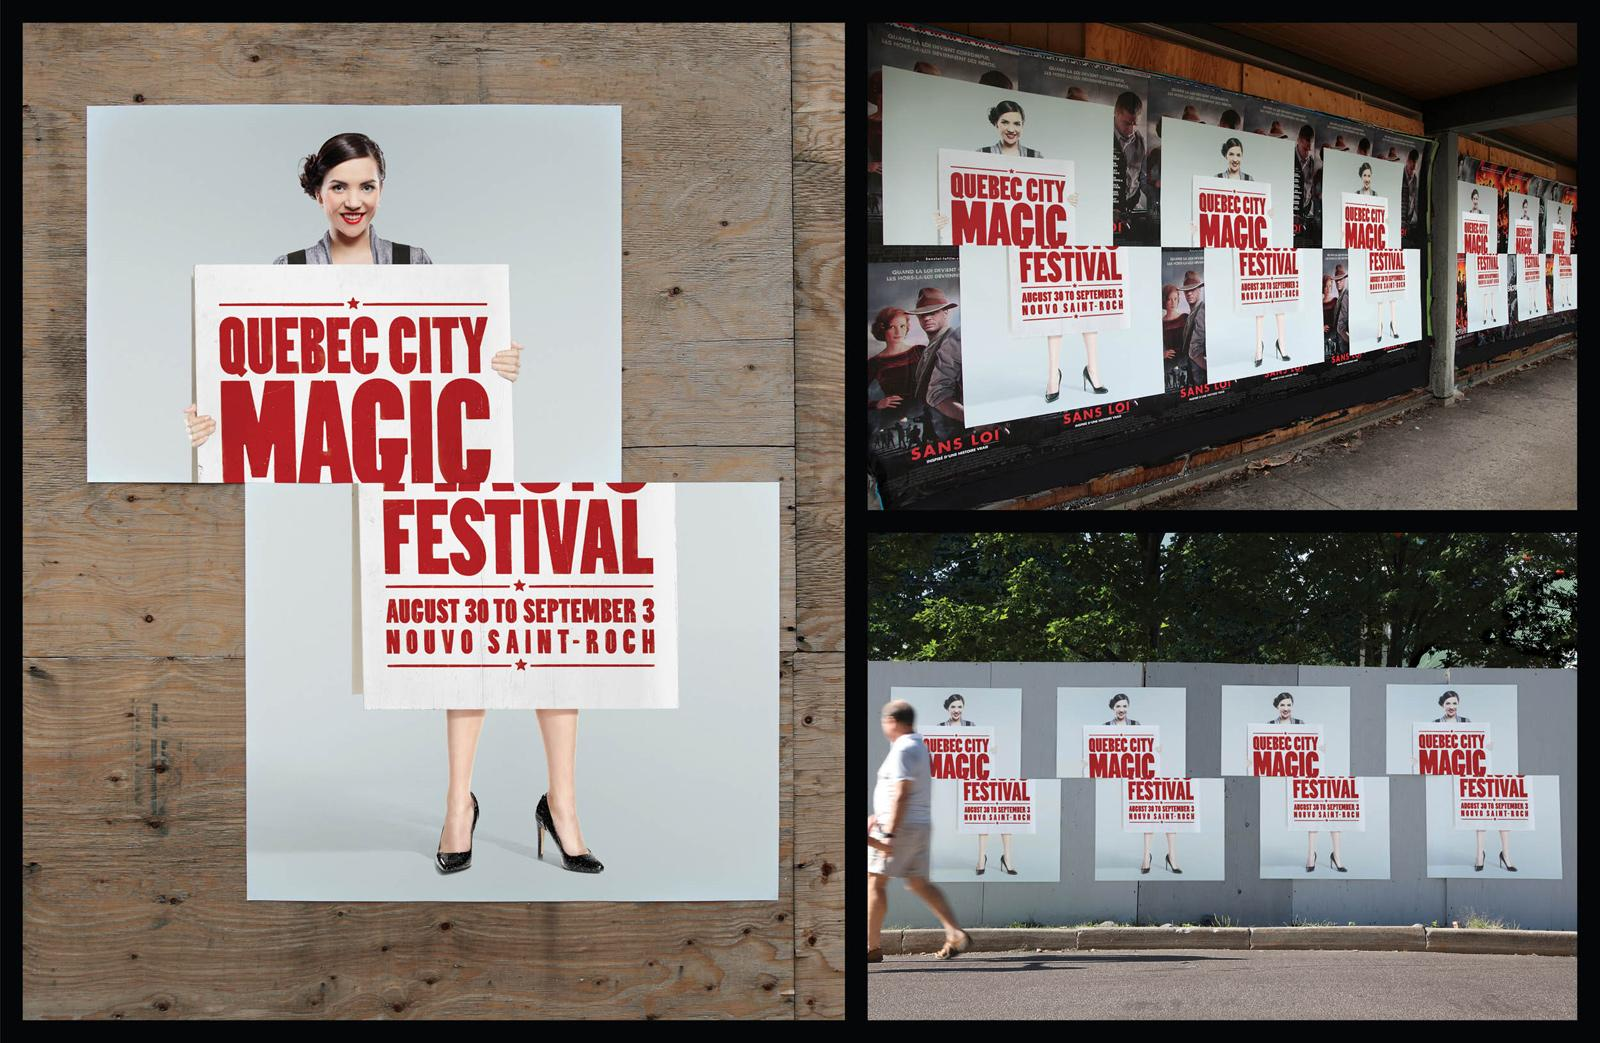 Quebec city magic festival Outdoor Ad -  Sliced Girl